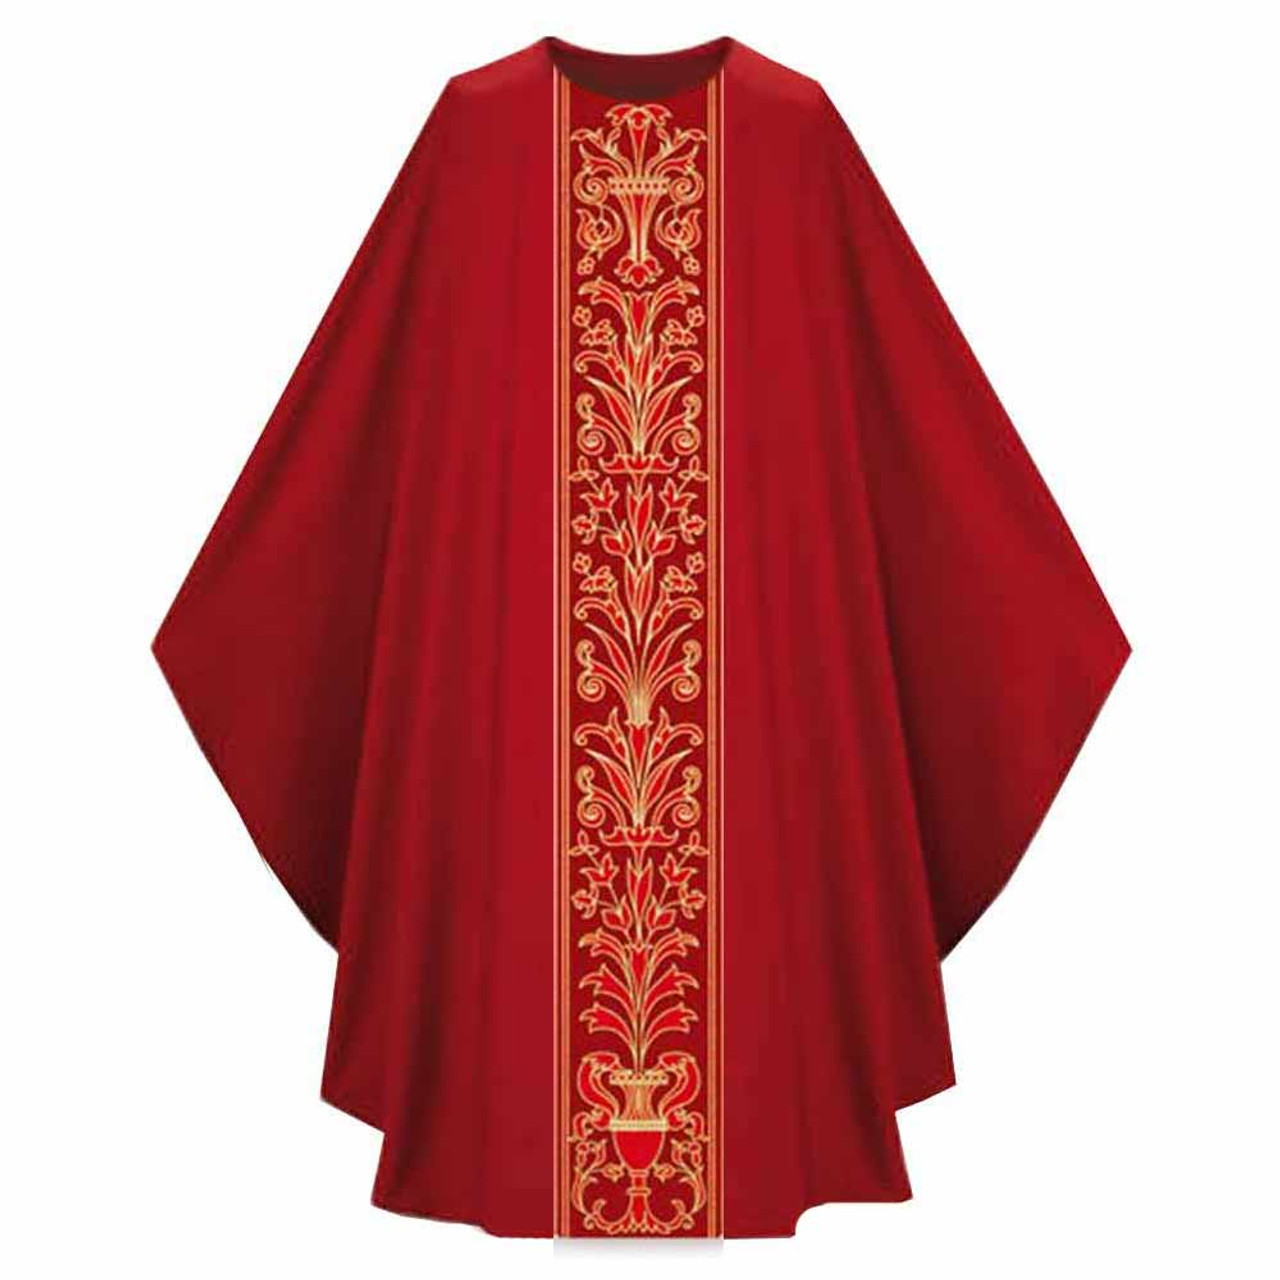 3972 Red Chasuble in Pius